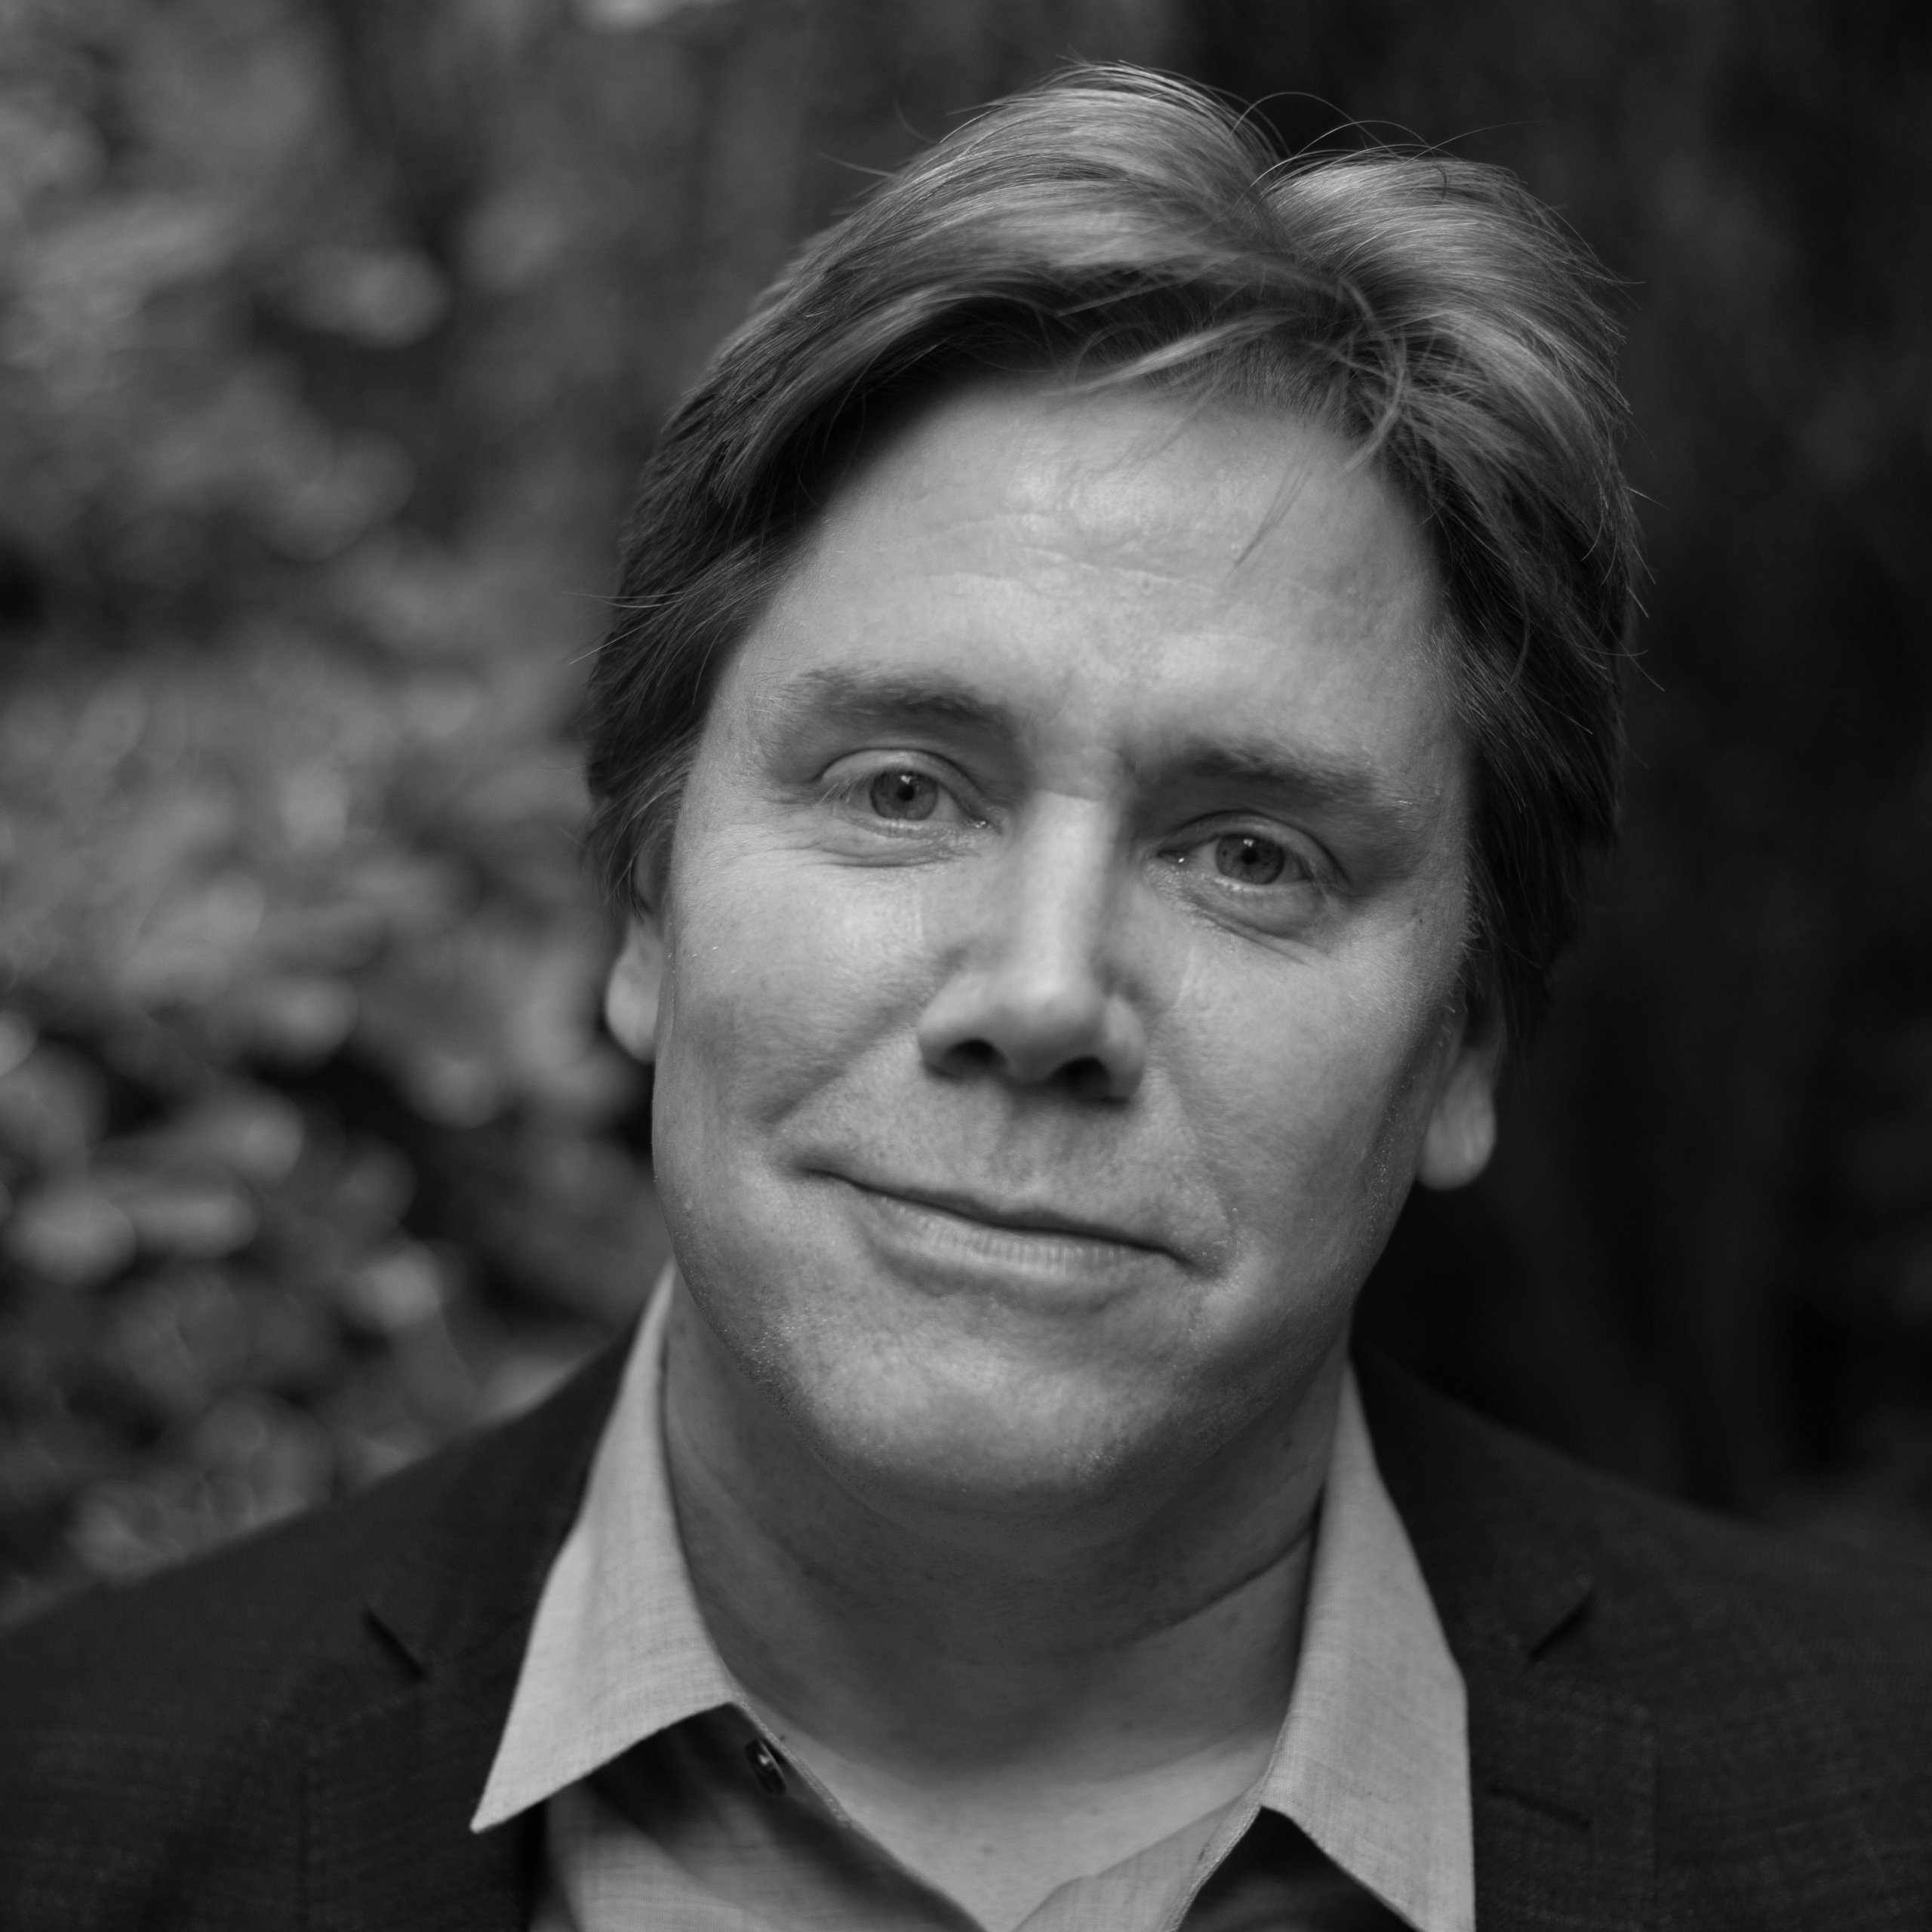 Stephen Chbosky smiling headshot